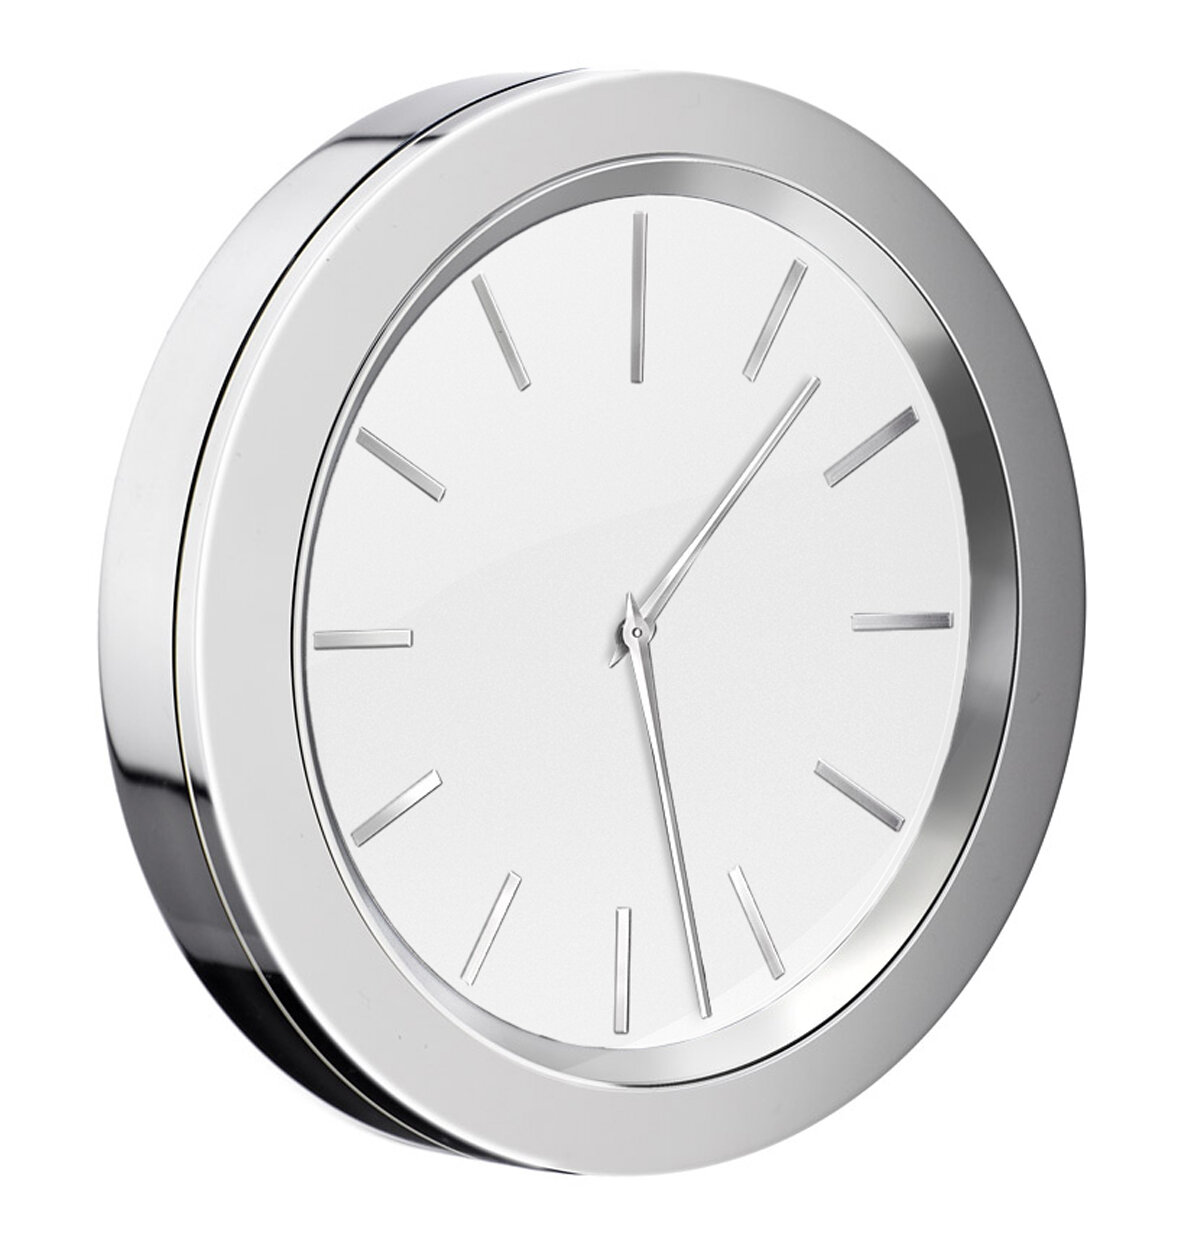 Smedbo Self Adhesive Bathroom Mirror Wall Clock | Wayfair